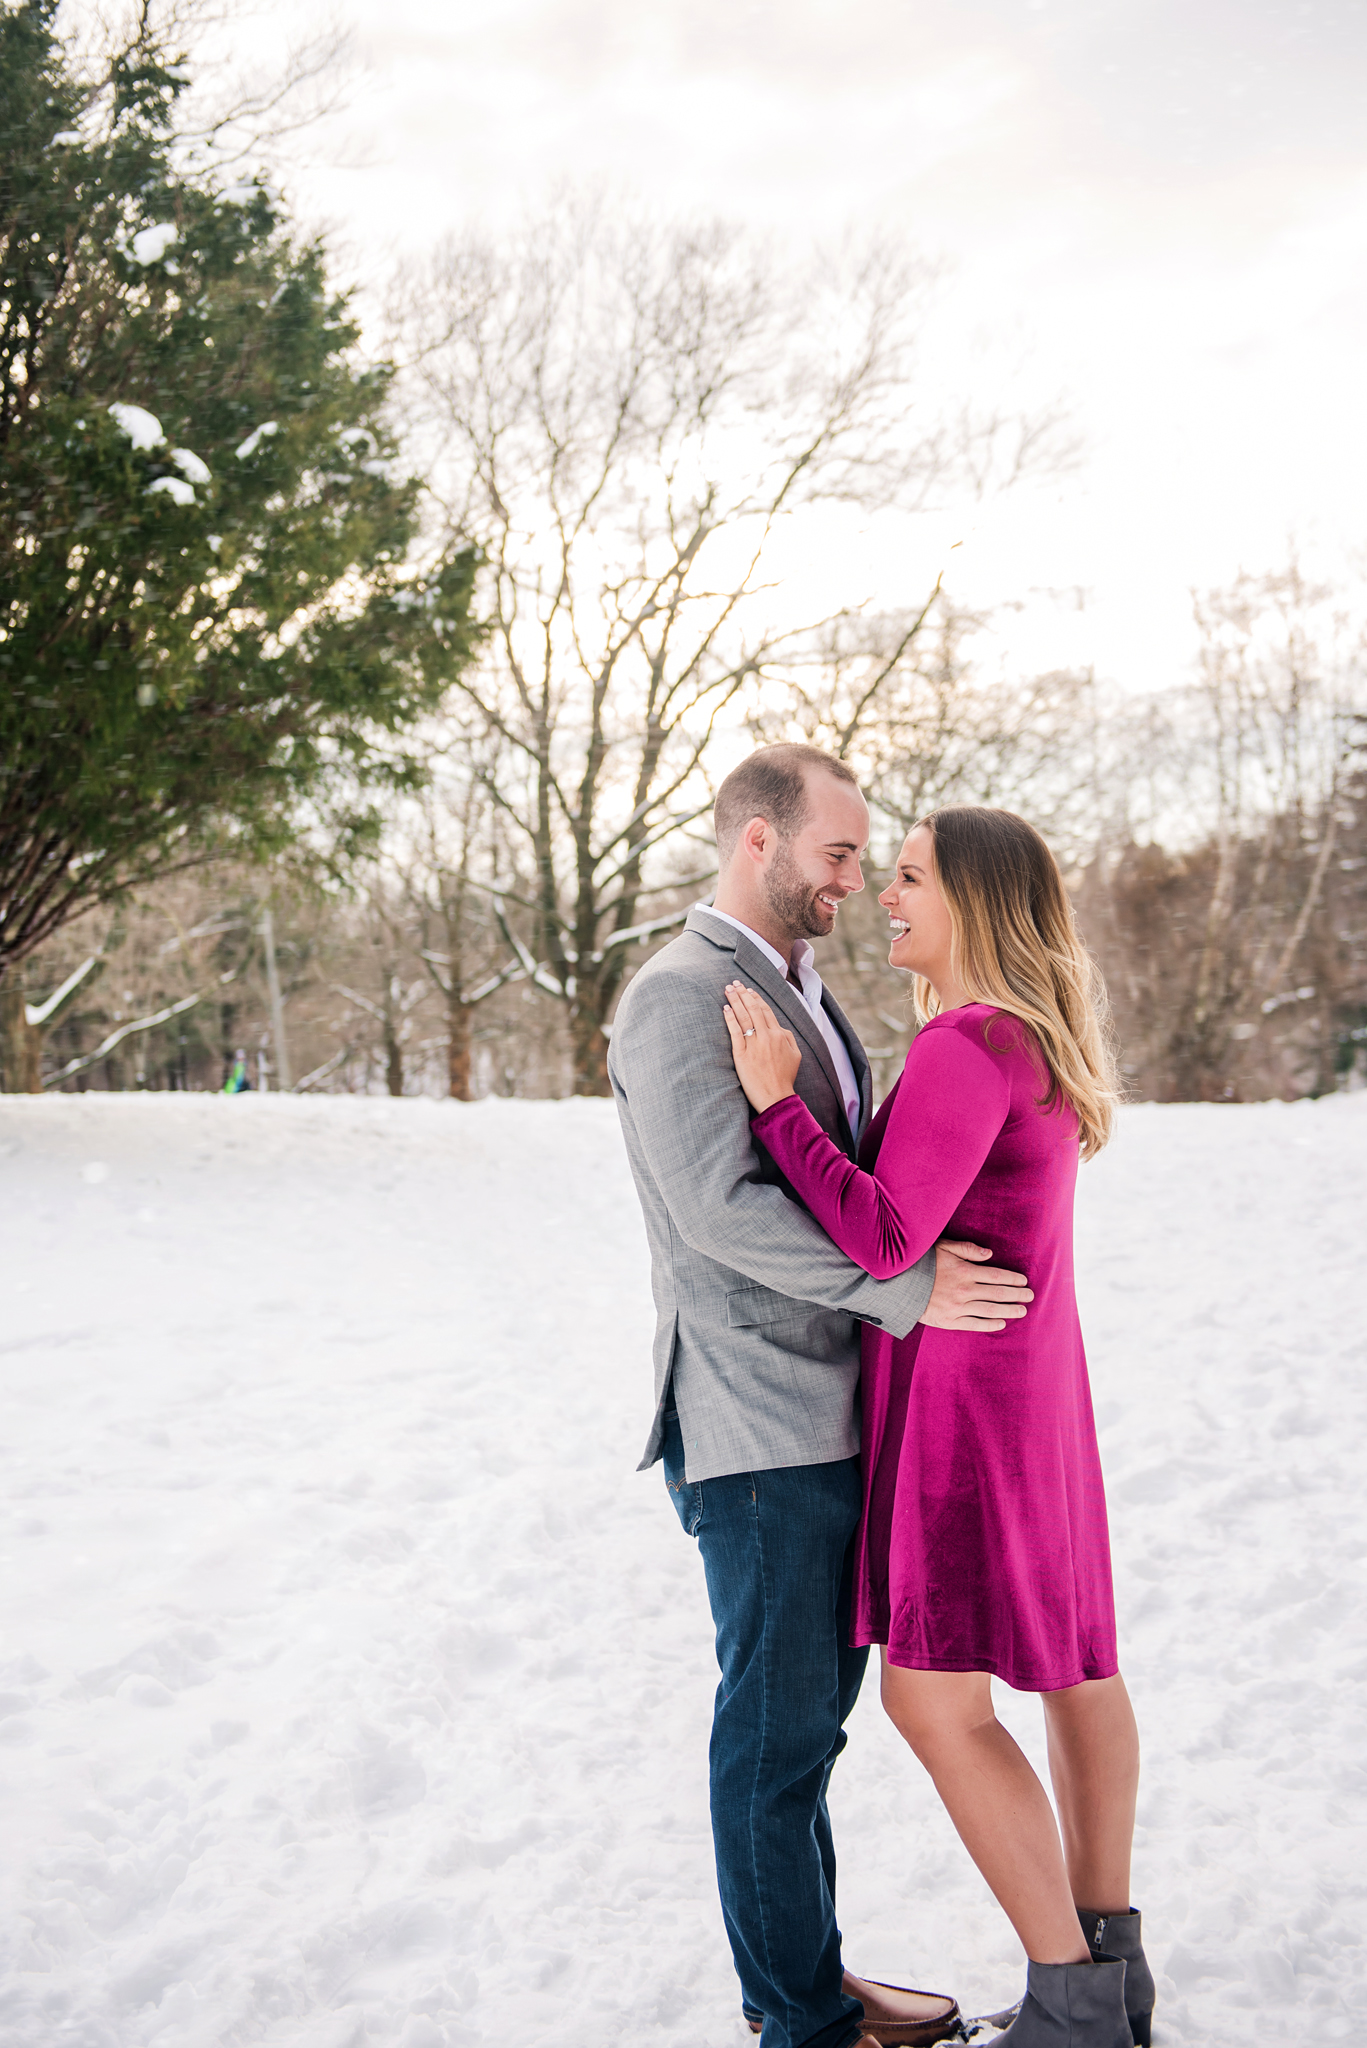 Webster_Park_Engagement_Session_Rochester_NY_photographer_DSC_6330.jpg